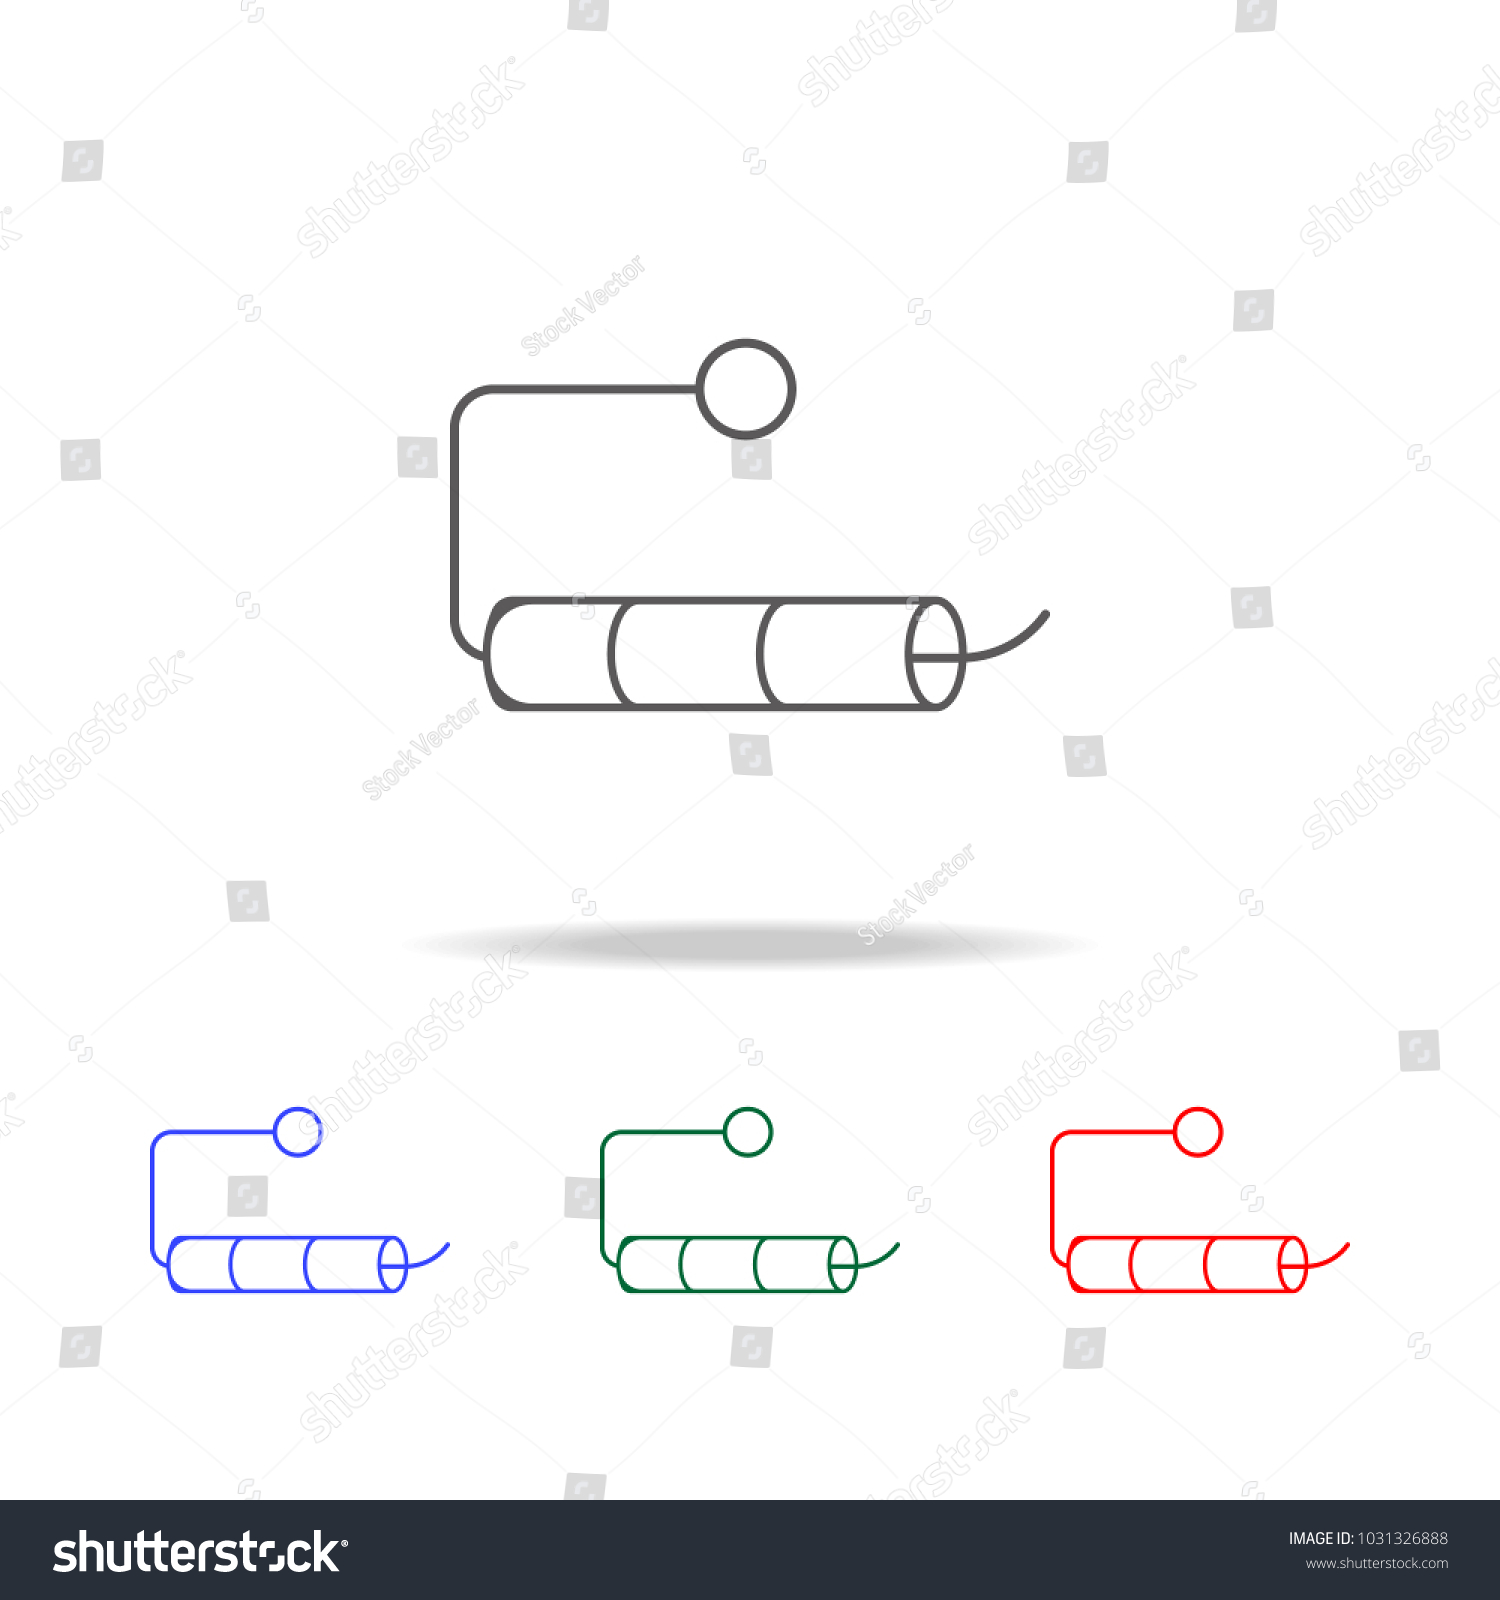 Empty Roll Toilet Paper Icon Elements Stock Vector (Royalty Free ...